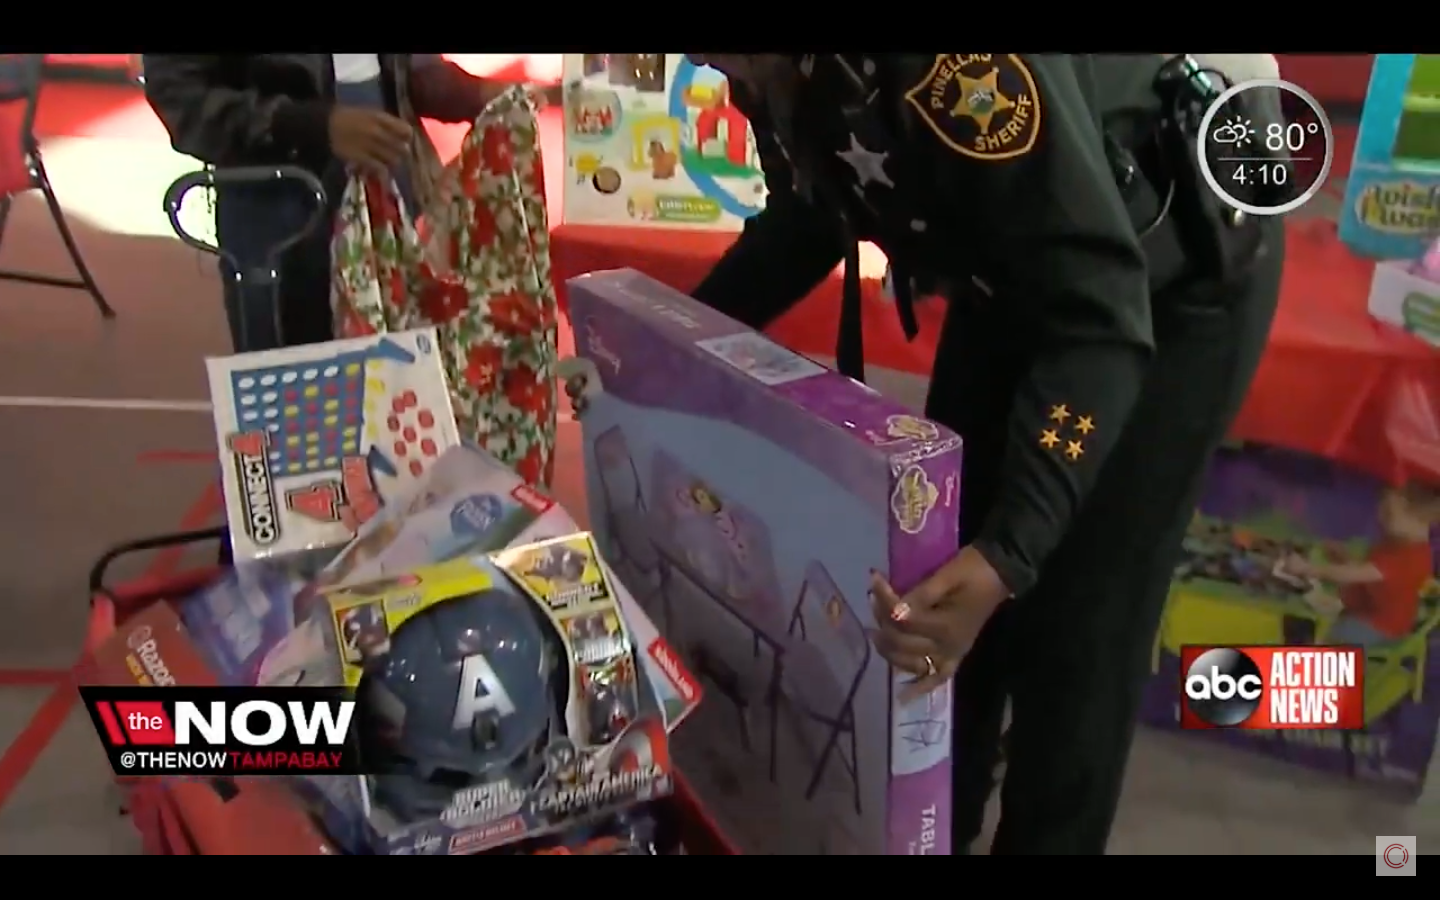 ABC Action News The Now Tampa Bay – Affordable Christmas Story